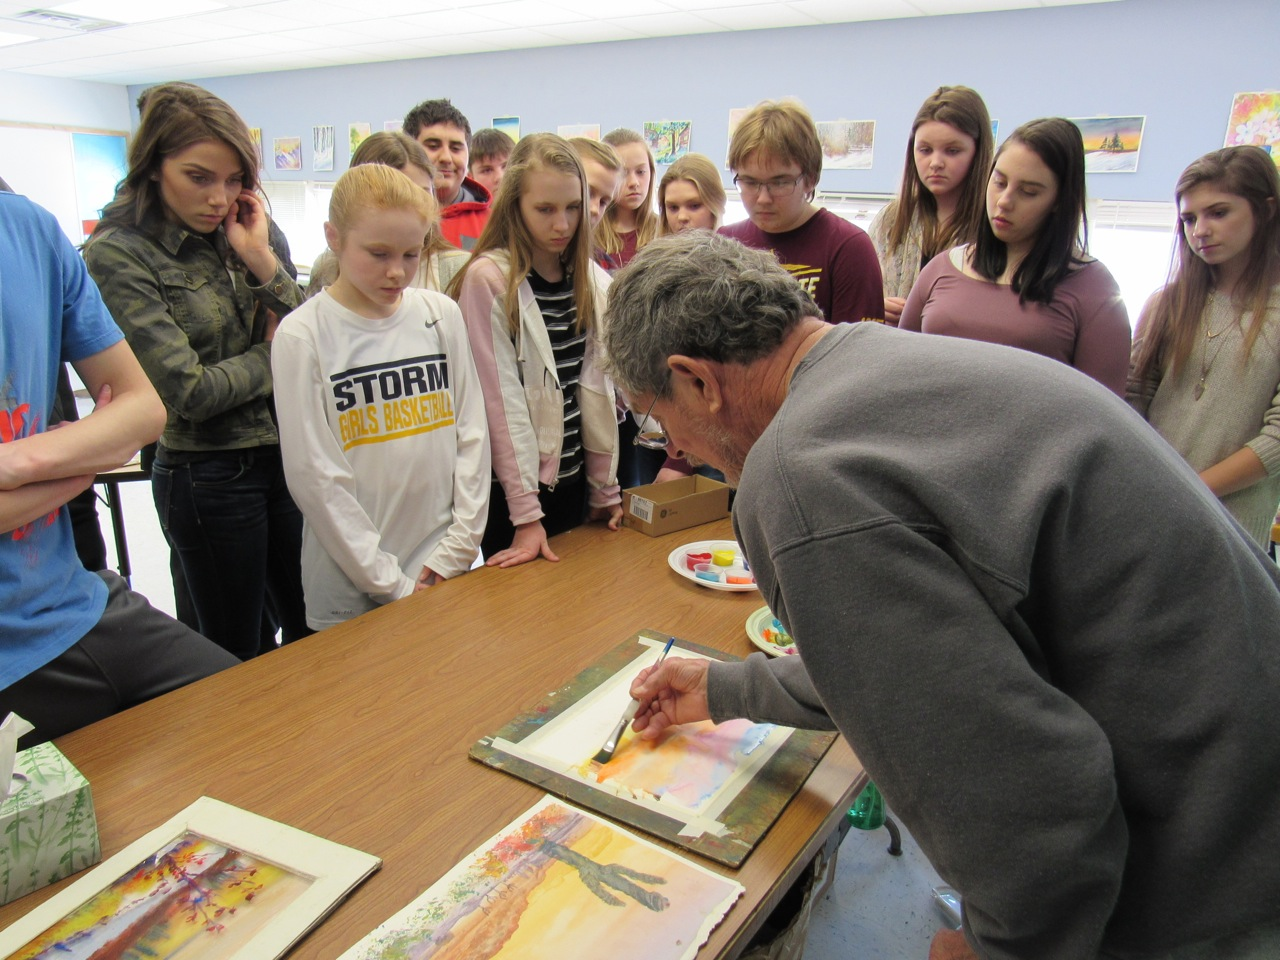 Jim Mondloch using watercolor with students